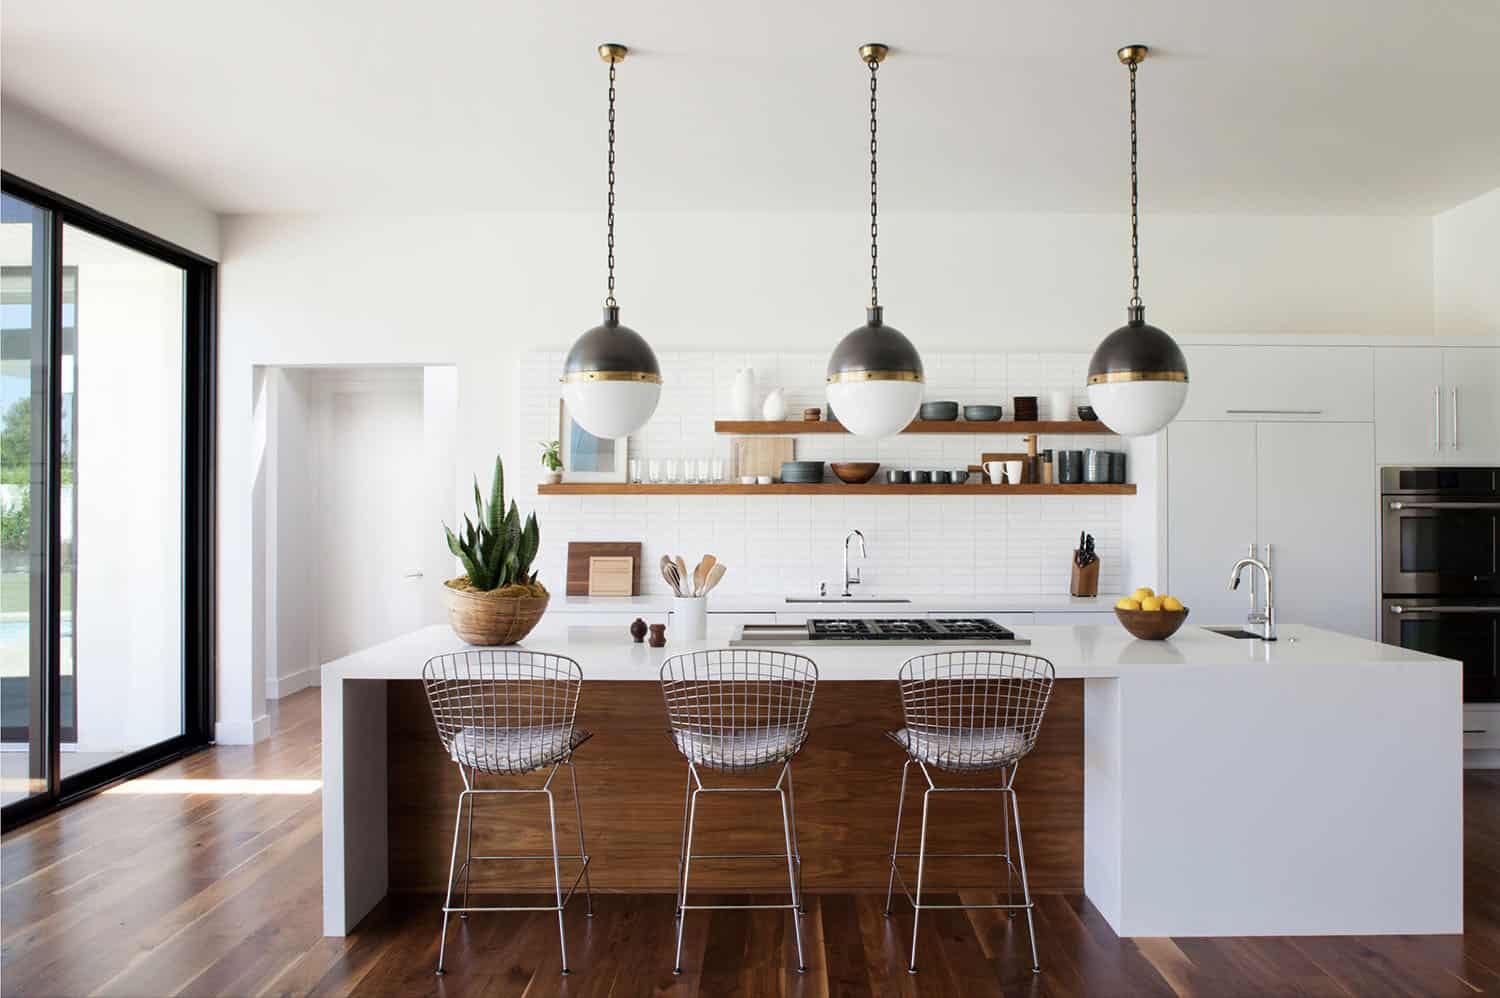 21 Incredible Midcentury Modern Kitchens to Delight the Senses